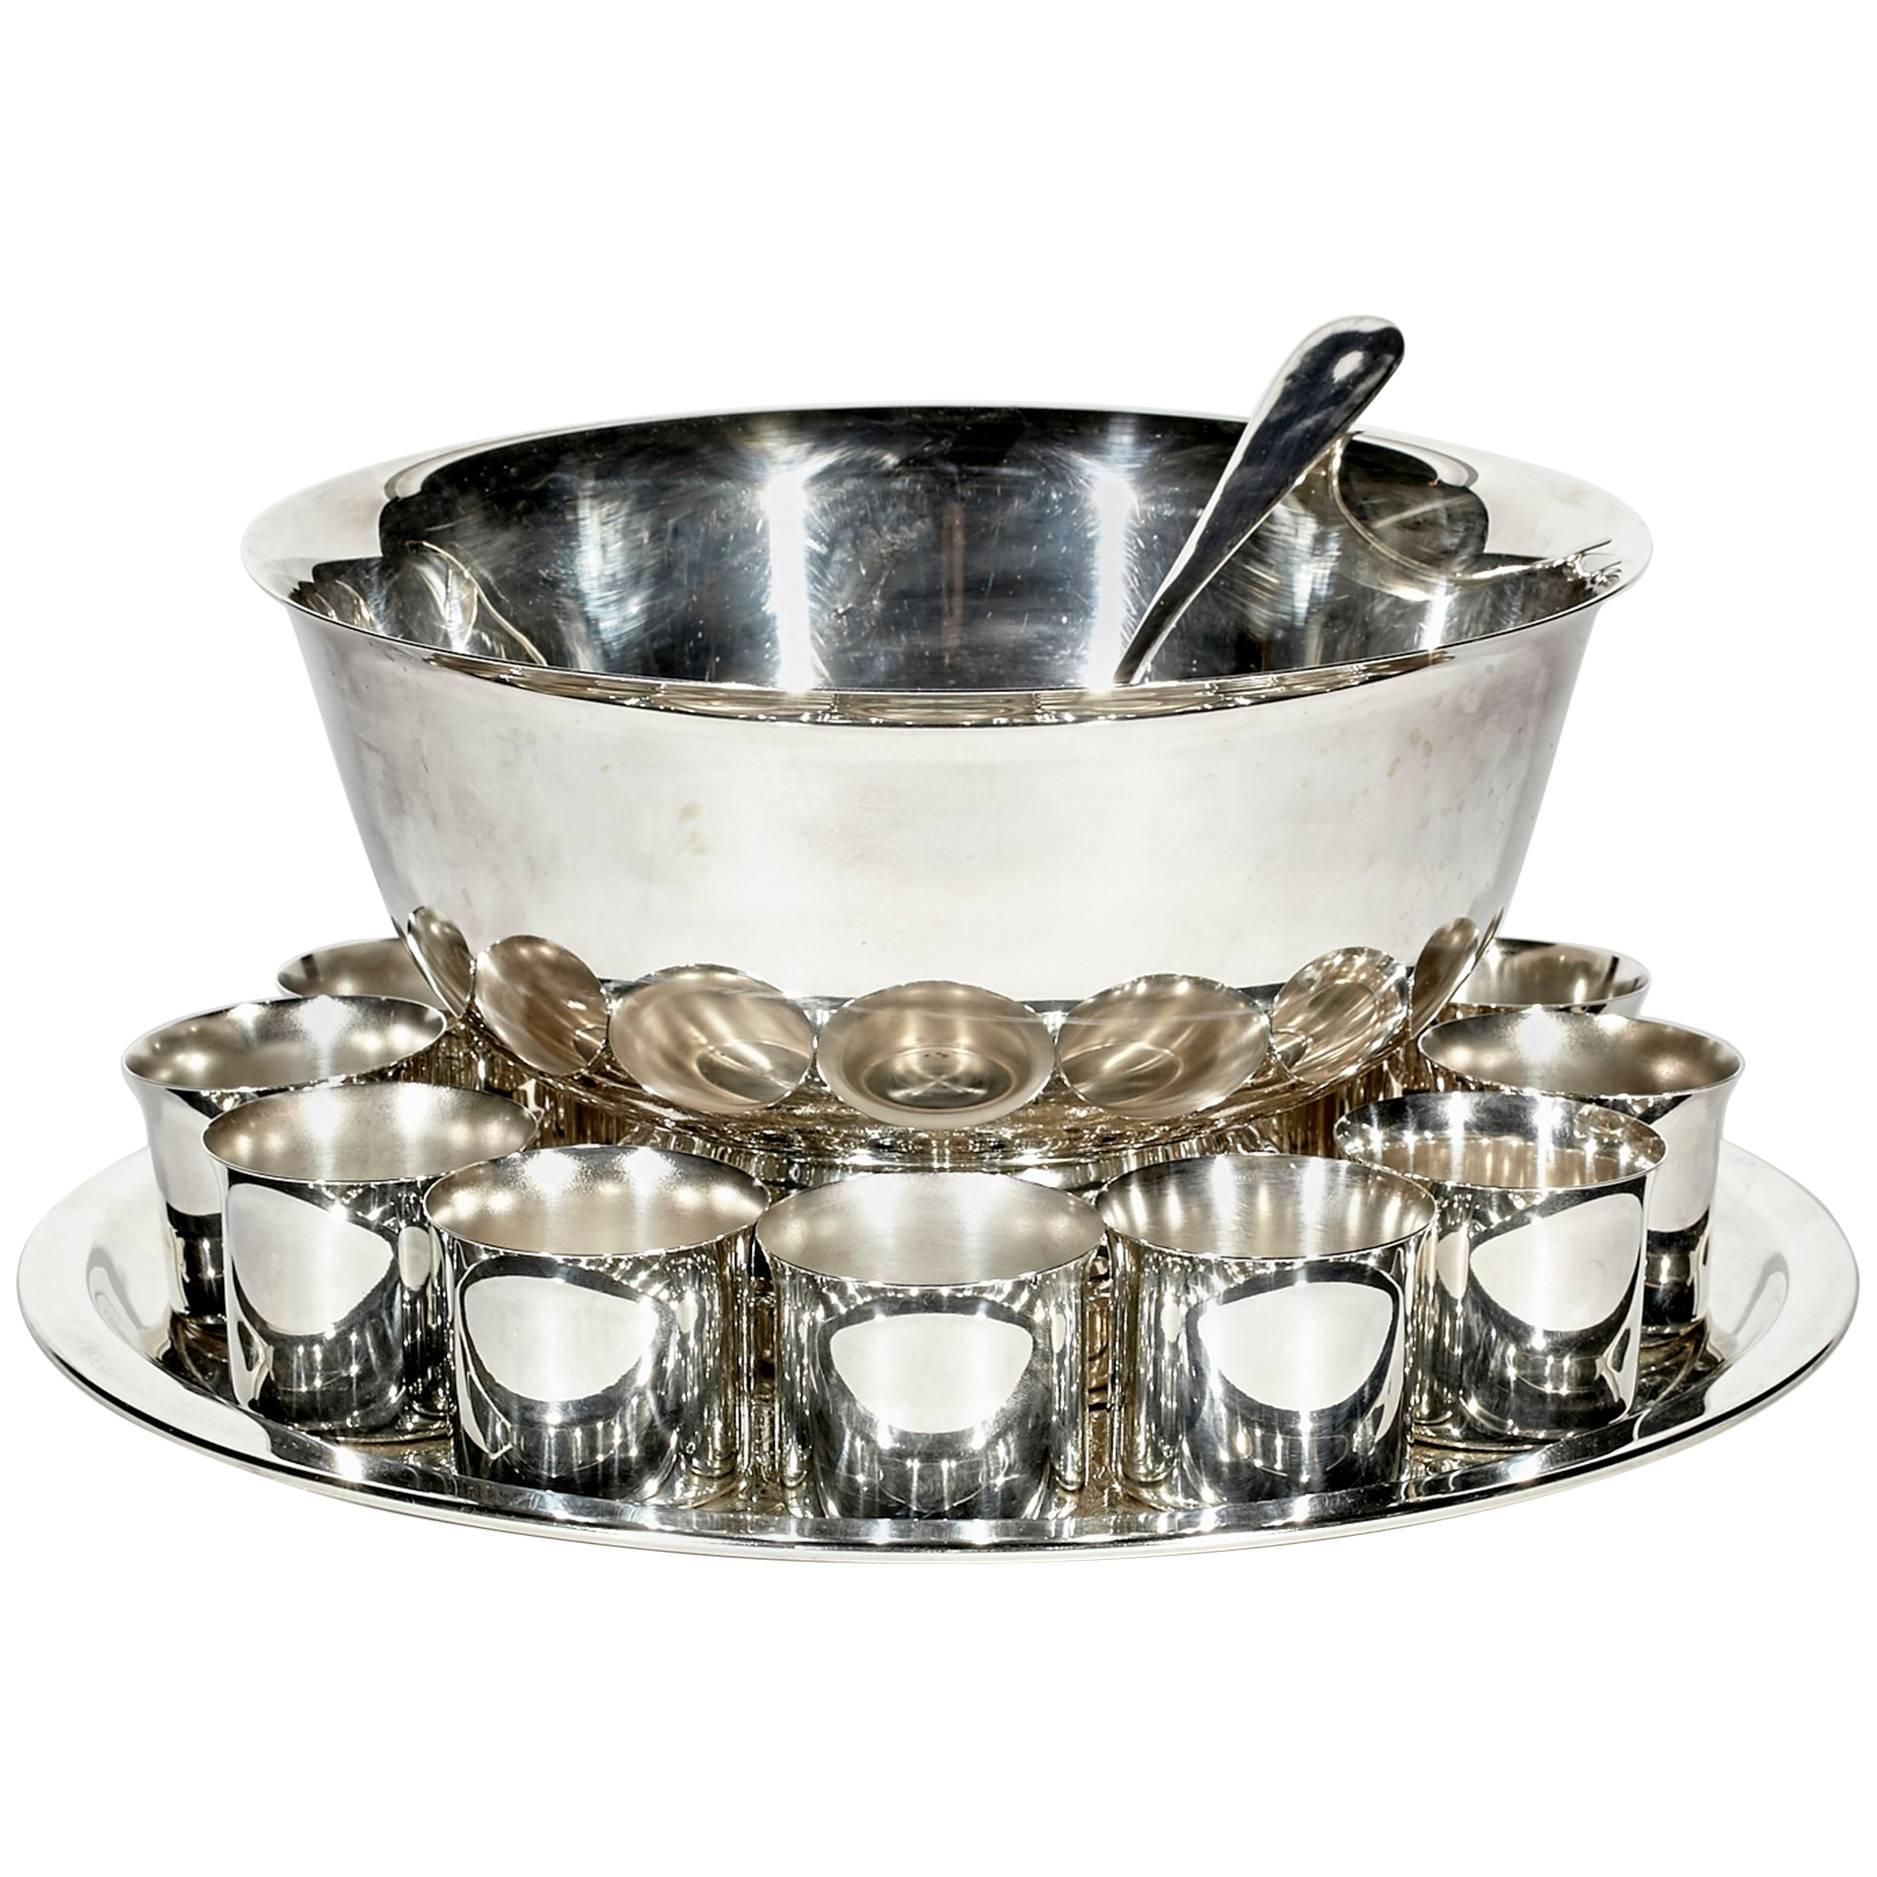 1960s Silver Plate Punch Bowl Set For Sale  sc 1 st  1stDibs & 1960s Silver Plate Punch Bowl Set For Sale at 1stdibs